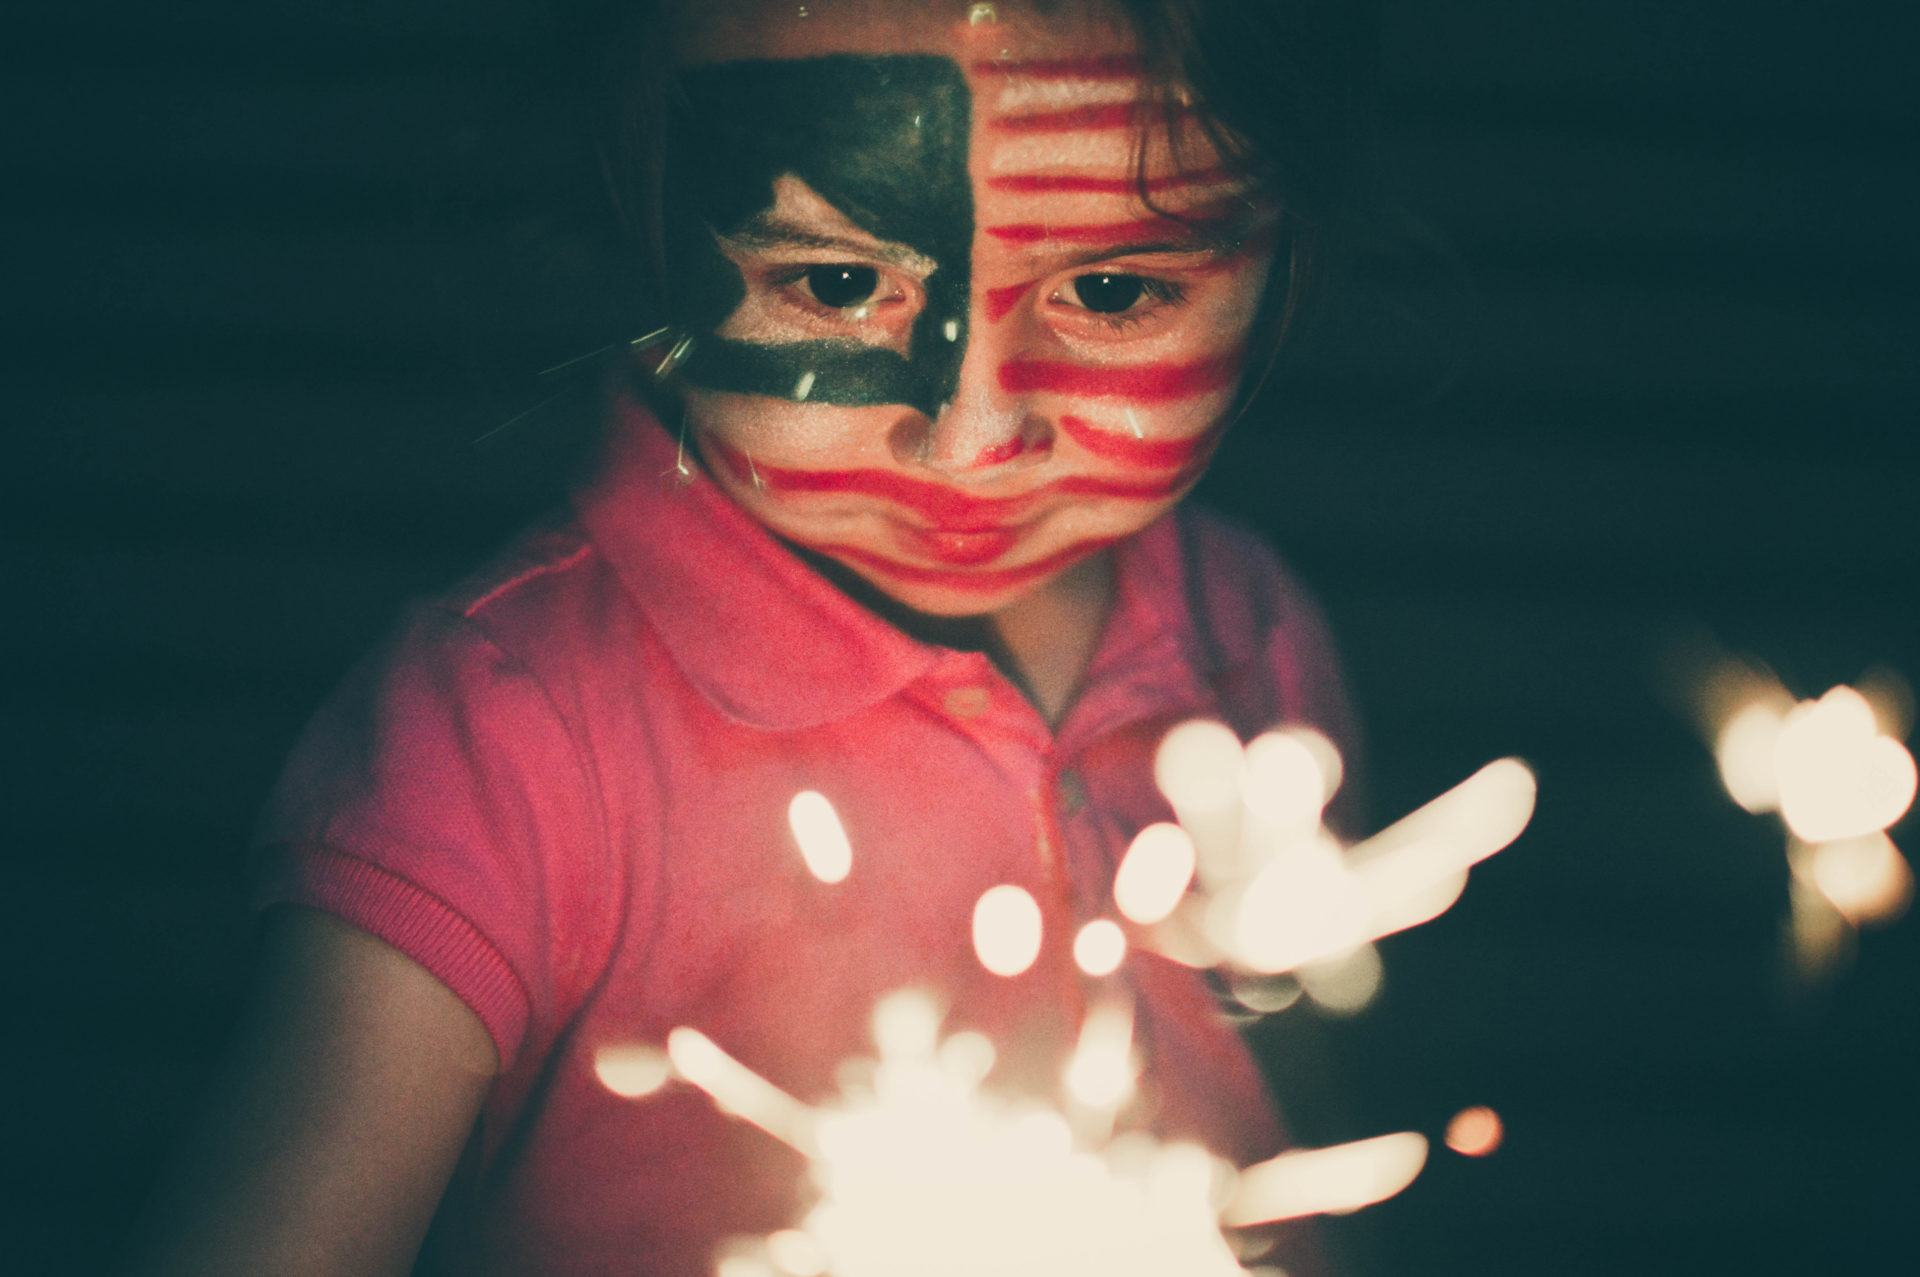 A young girl with her face painted red white and blue and a sparkler in her hand at night outside.